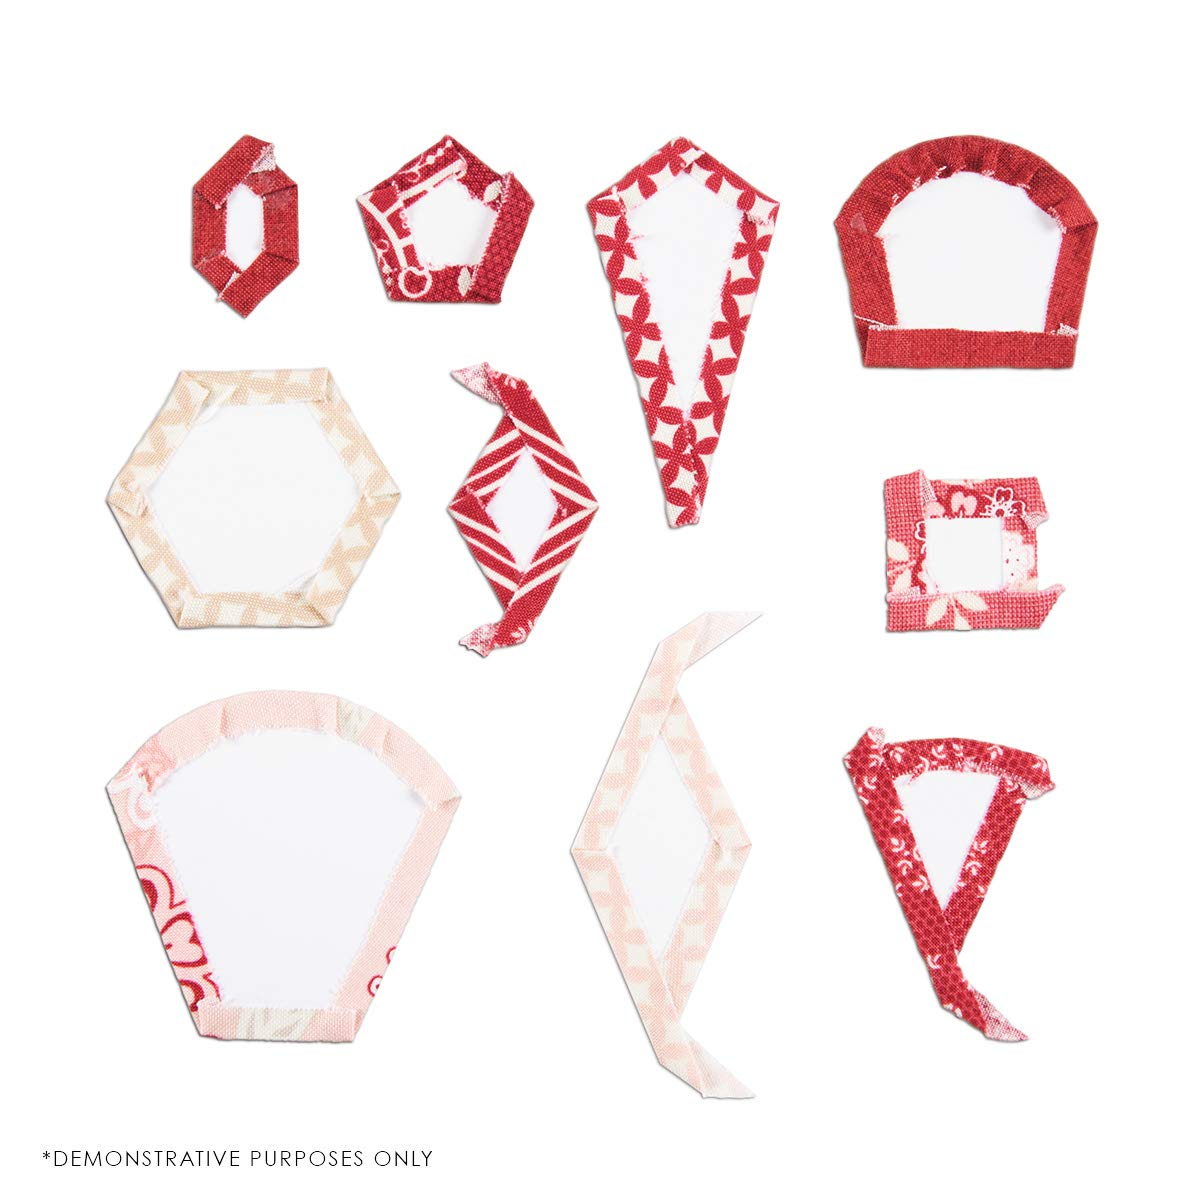 SUE DALEY DESIGNS Hexagon Papers Patchwork with Busyfingers HEX EPP English Paper Piecing 2 Packs 1 inch 200 Pieces Total